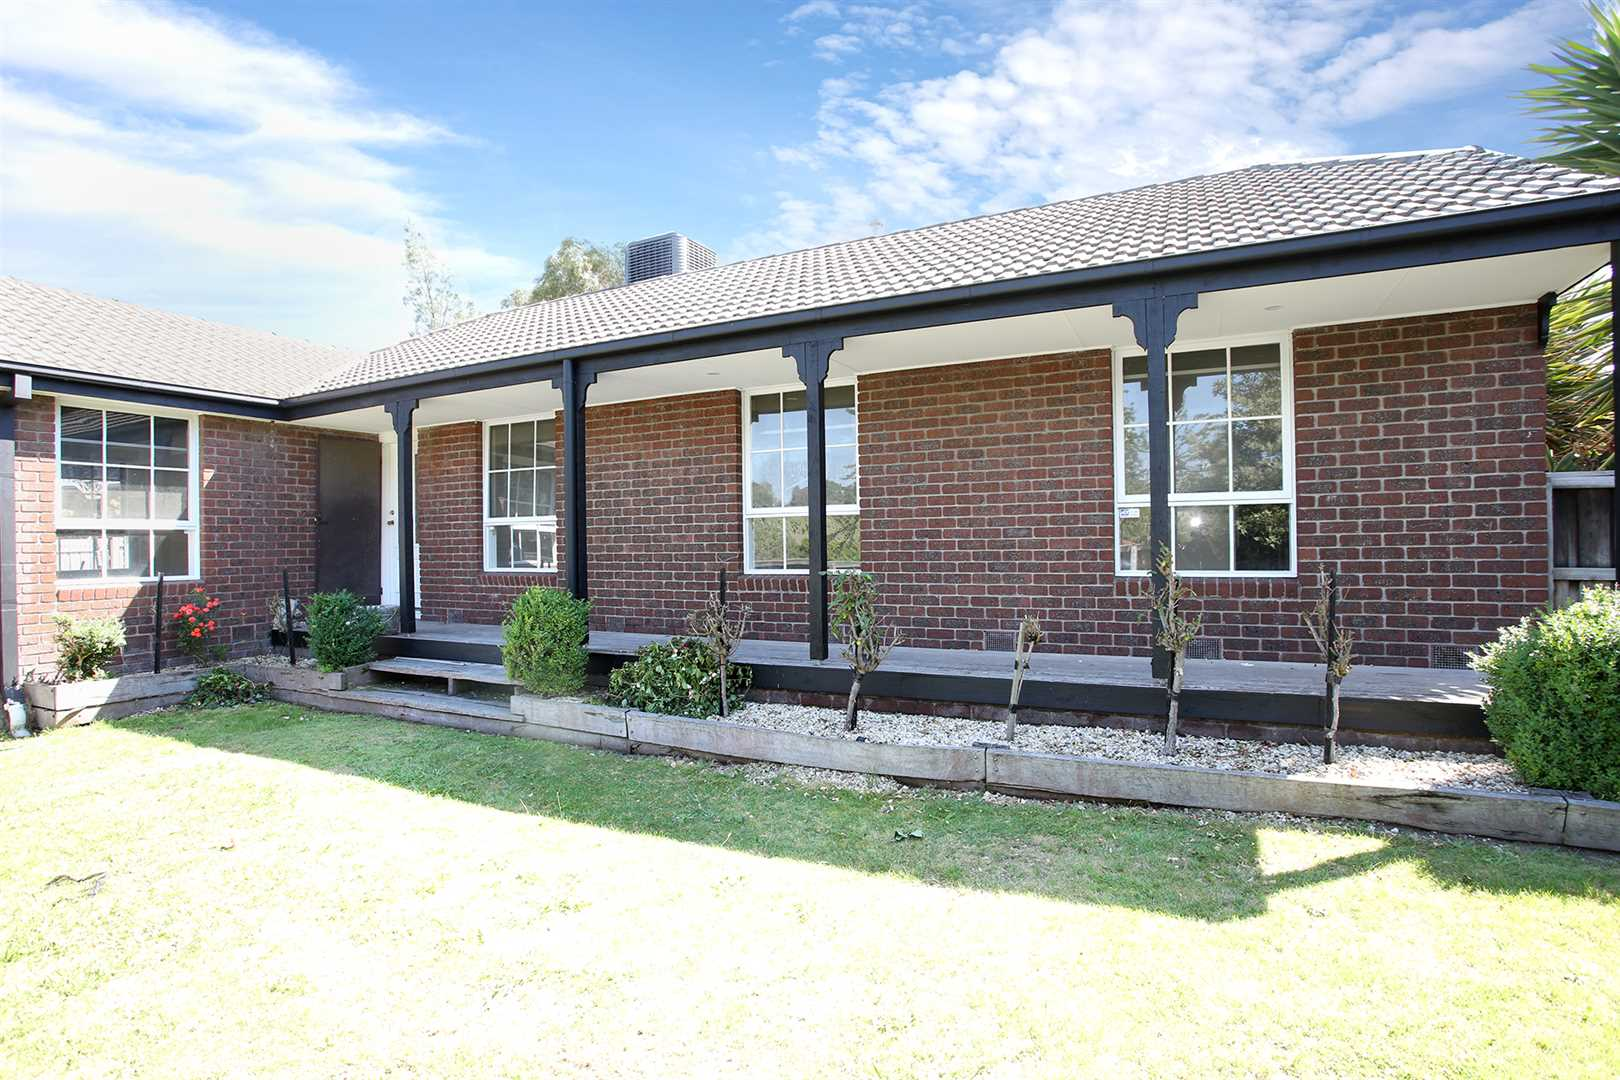 Fully renovated 4-bedroom home